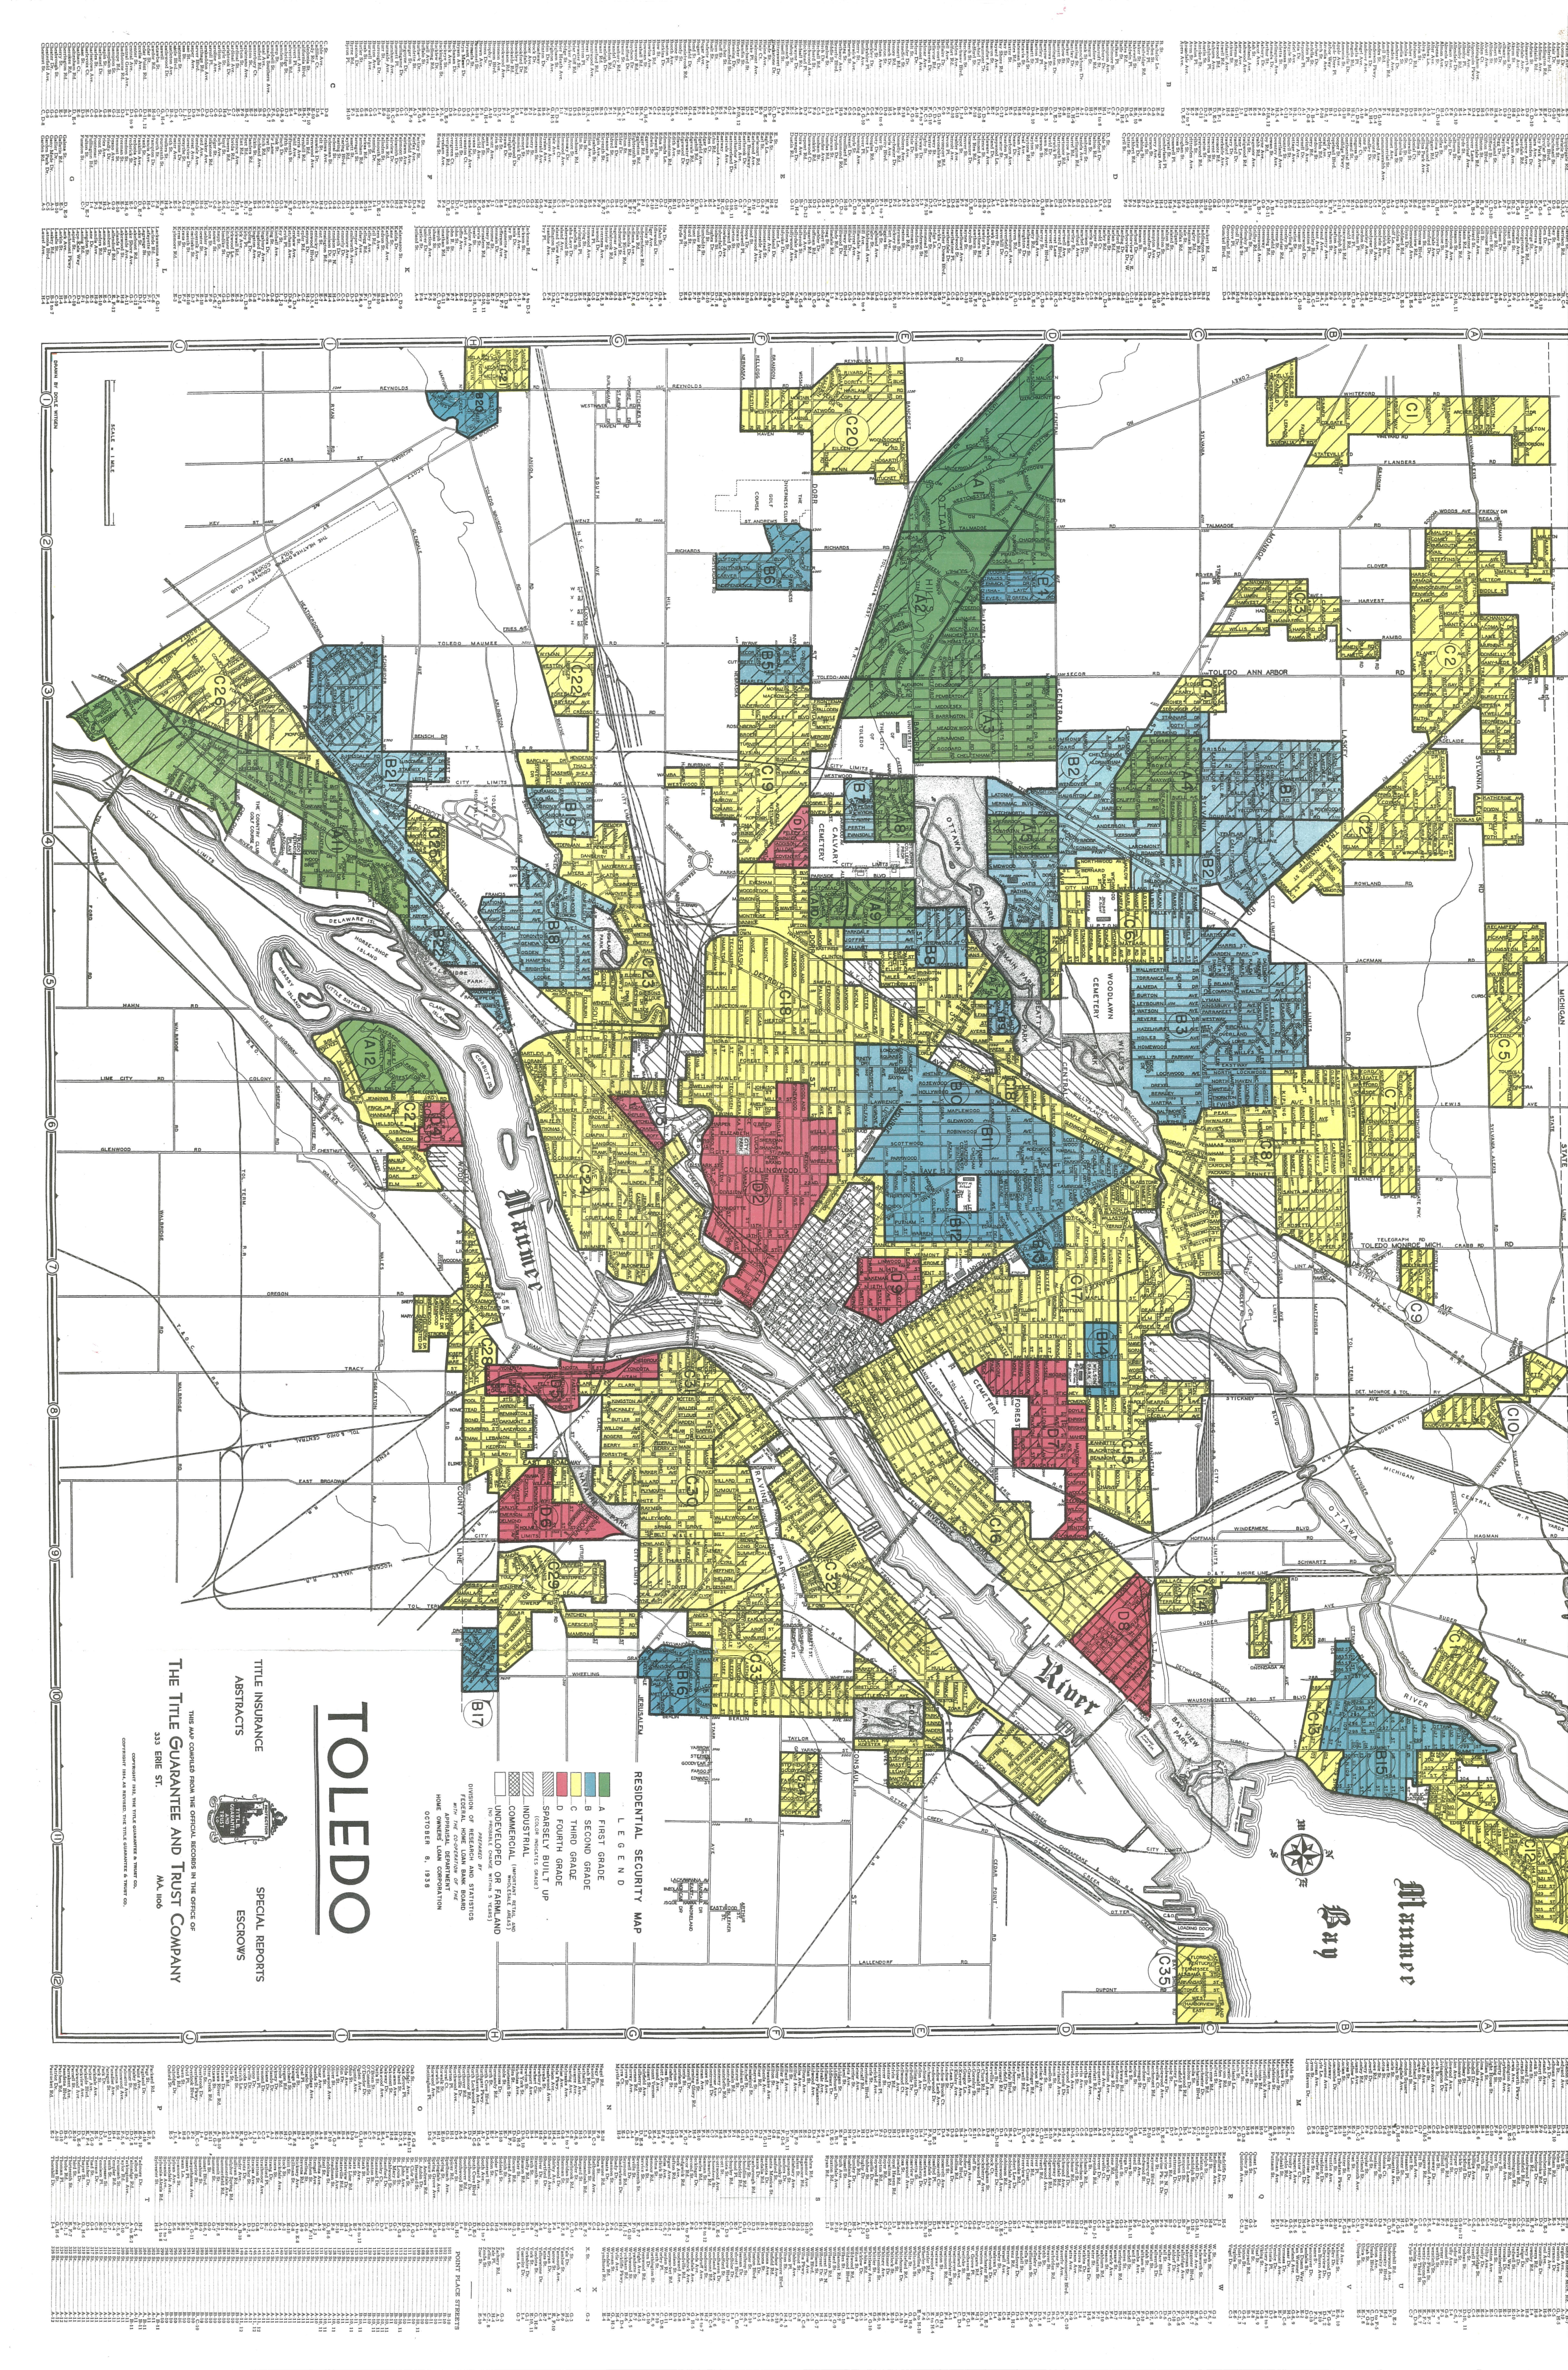 Redlining Maps Maps Geospatial Data Research Guides At Ohio - Map of ohio cities